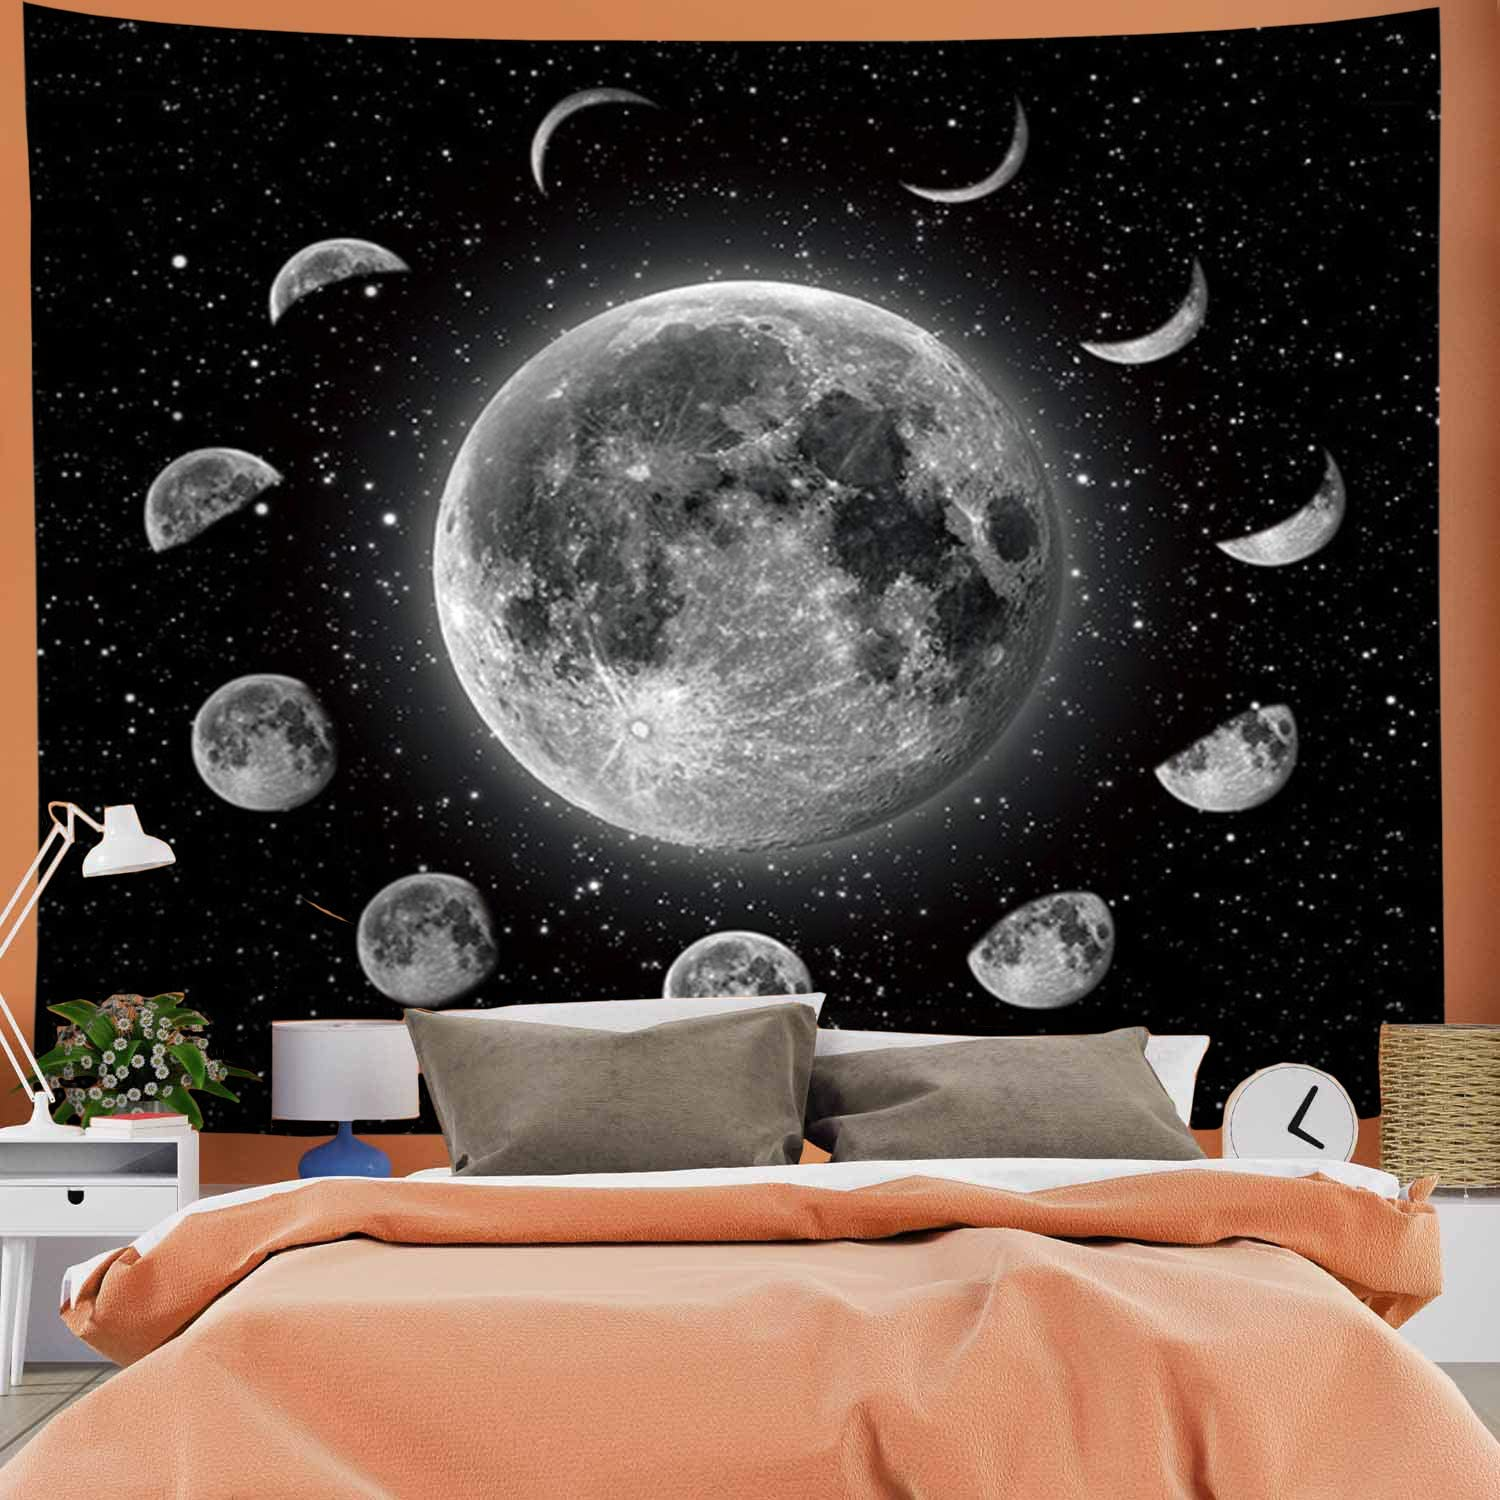 G.Will Moon Tapestry Planet Tapestry Moon Eclipse Tapestry Space Tapestry Psychedelic Tapestry Mysterious Starry Sky Tapestry Wall Hanging for Room